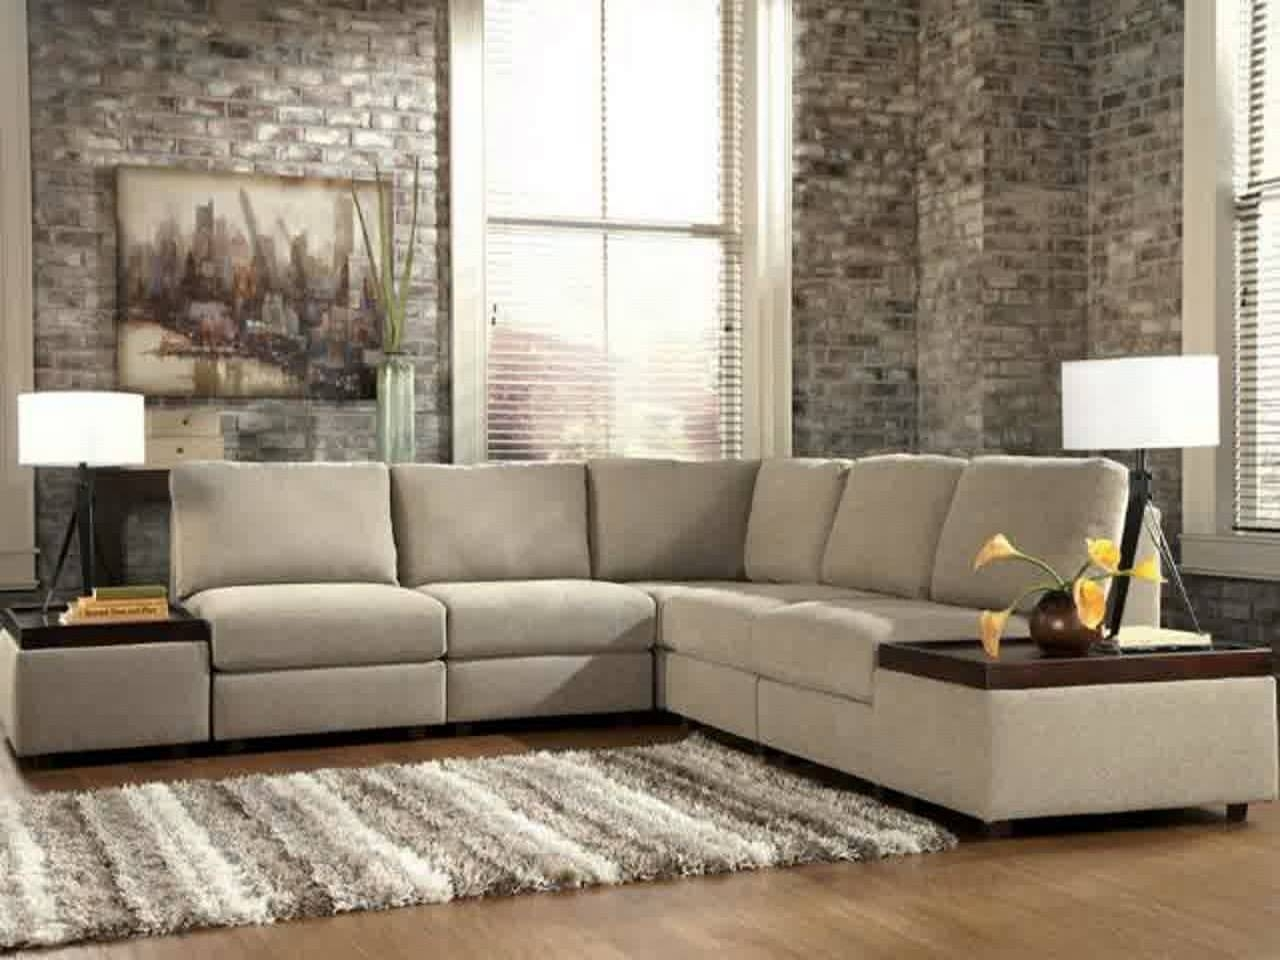 Sectional Sofas Canada - Fjellkjeden within Sectional Sofas in Canada (Image 9 of 10)